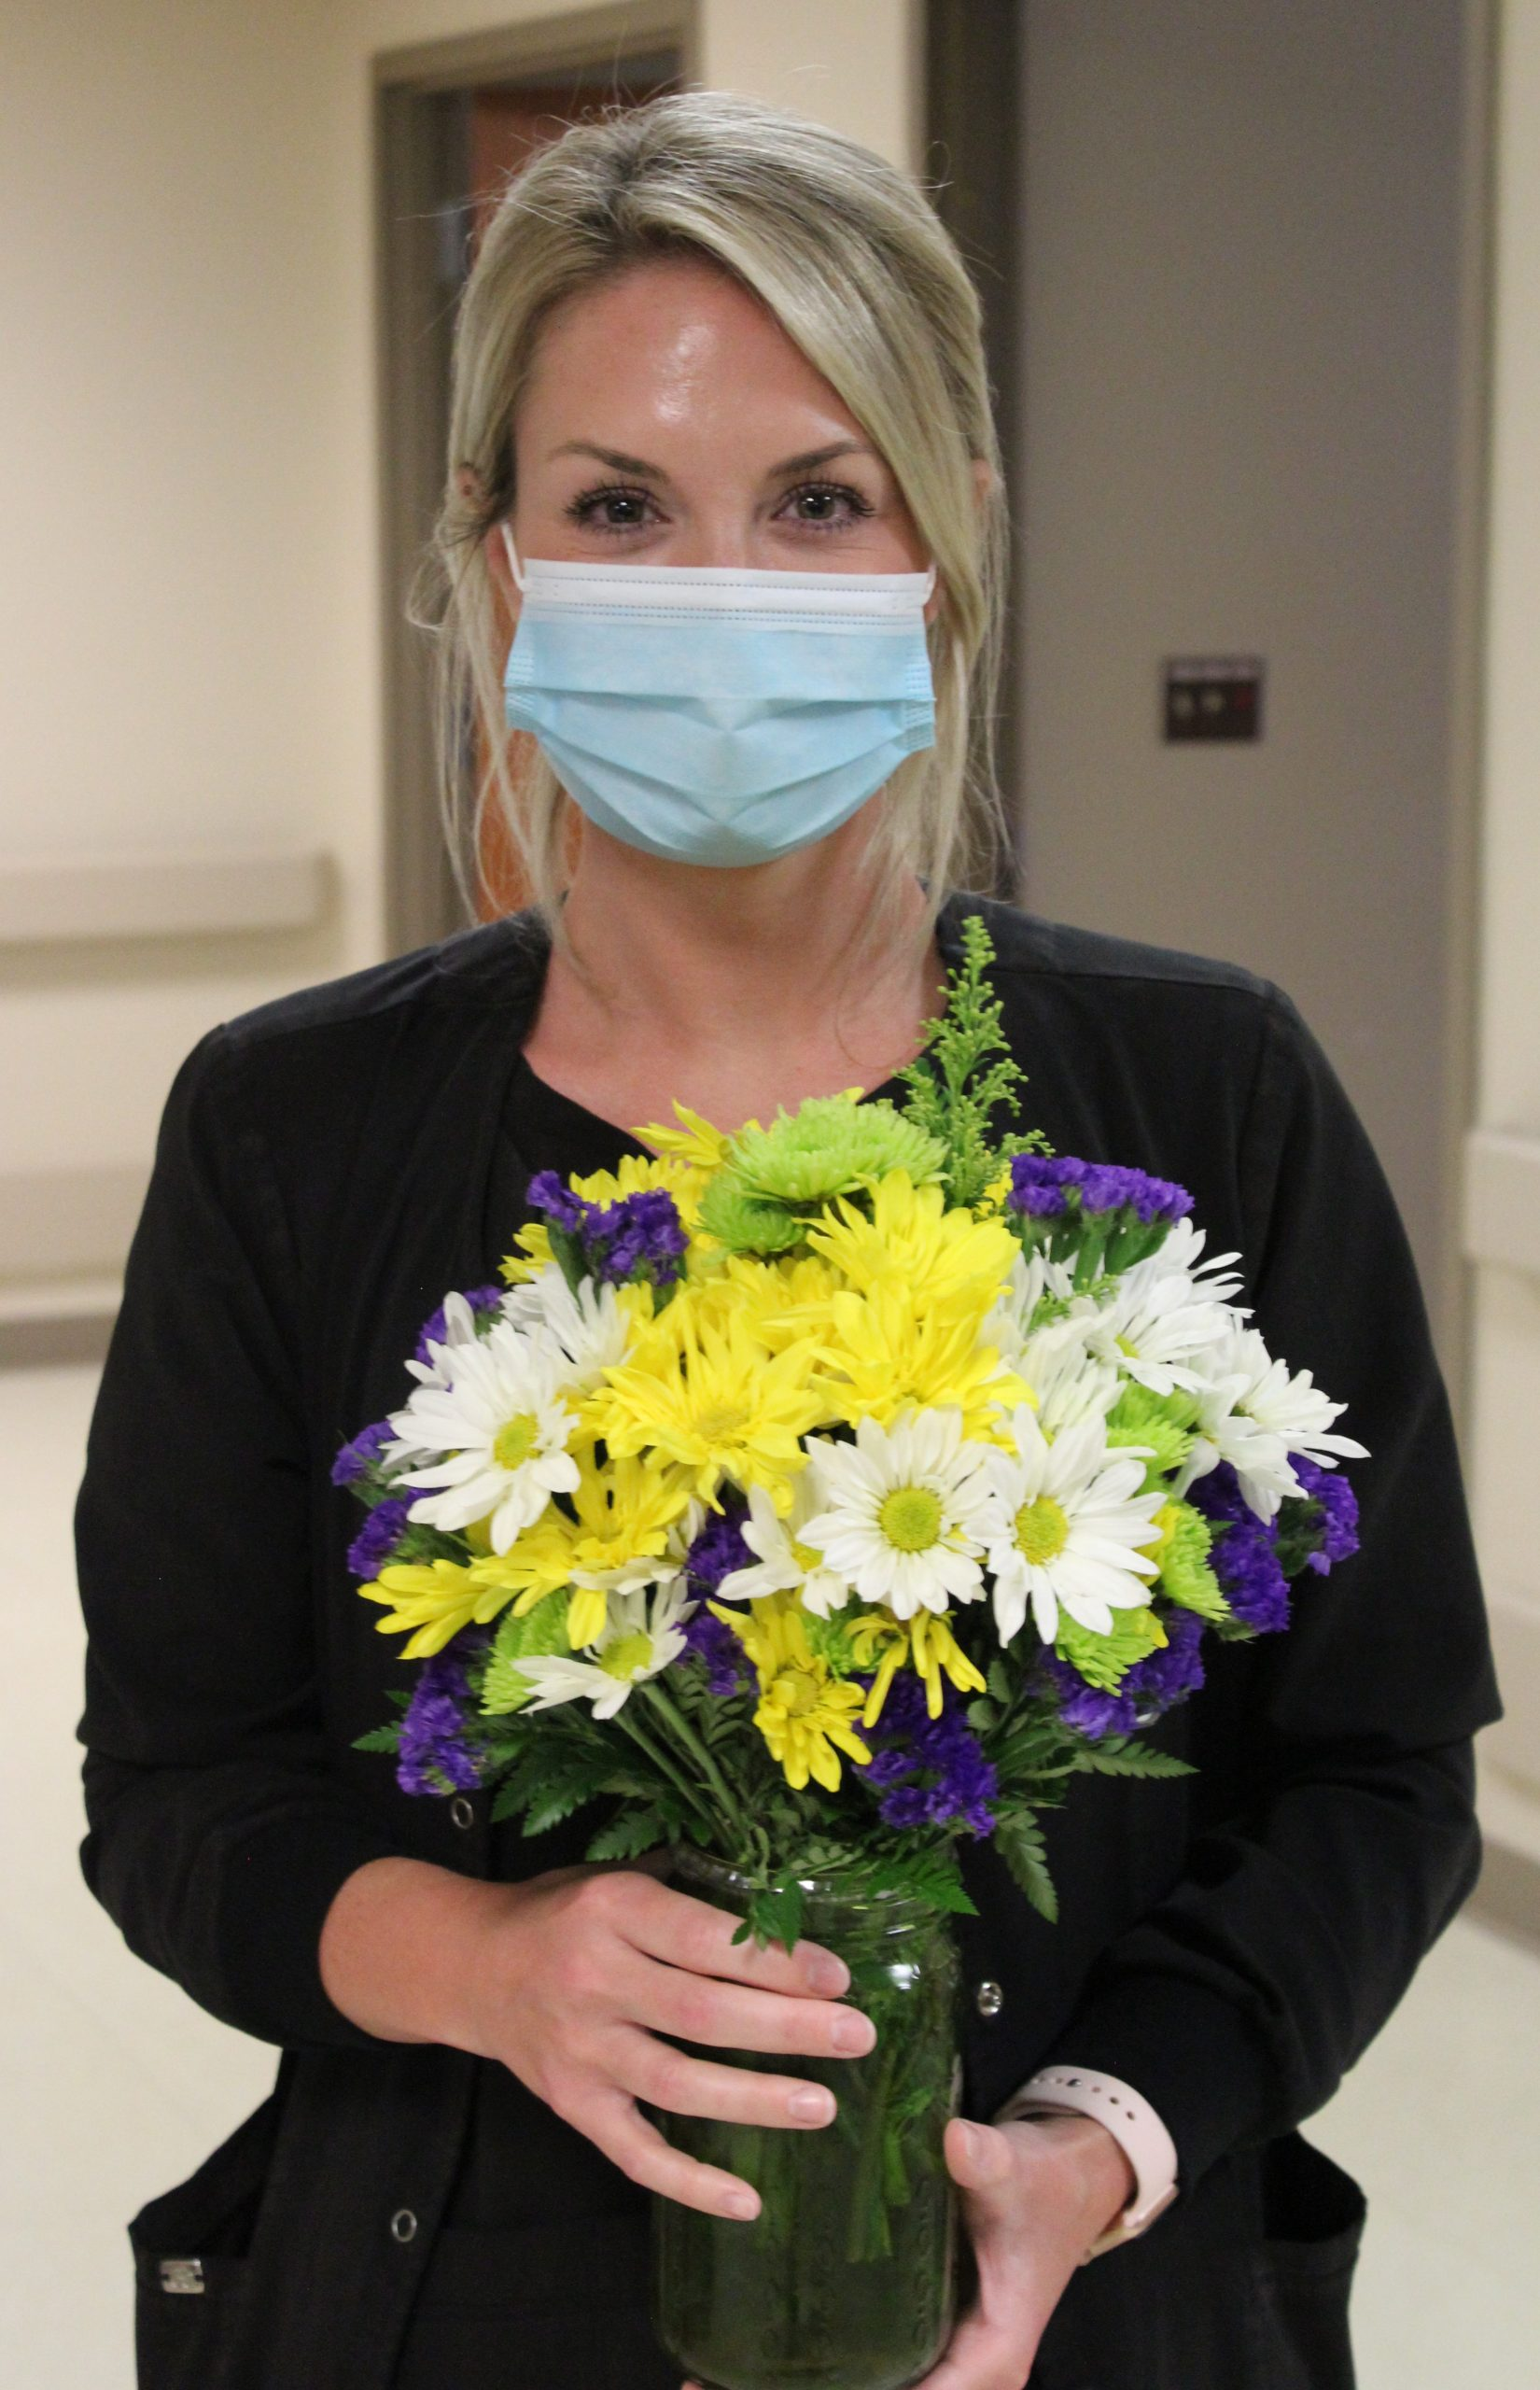 Nurse Laura Ivey dressed in black scrubs holding yellow and white daisies.